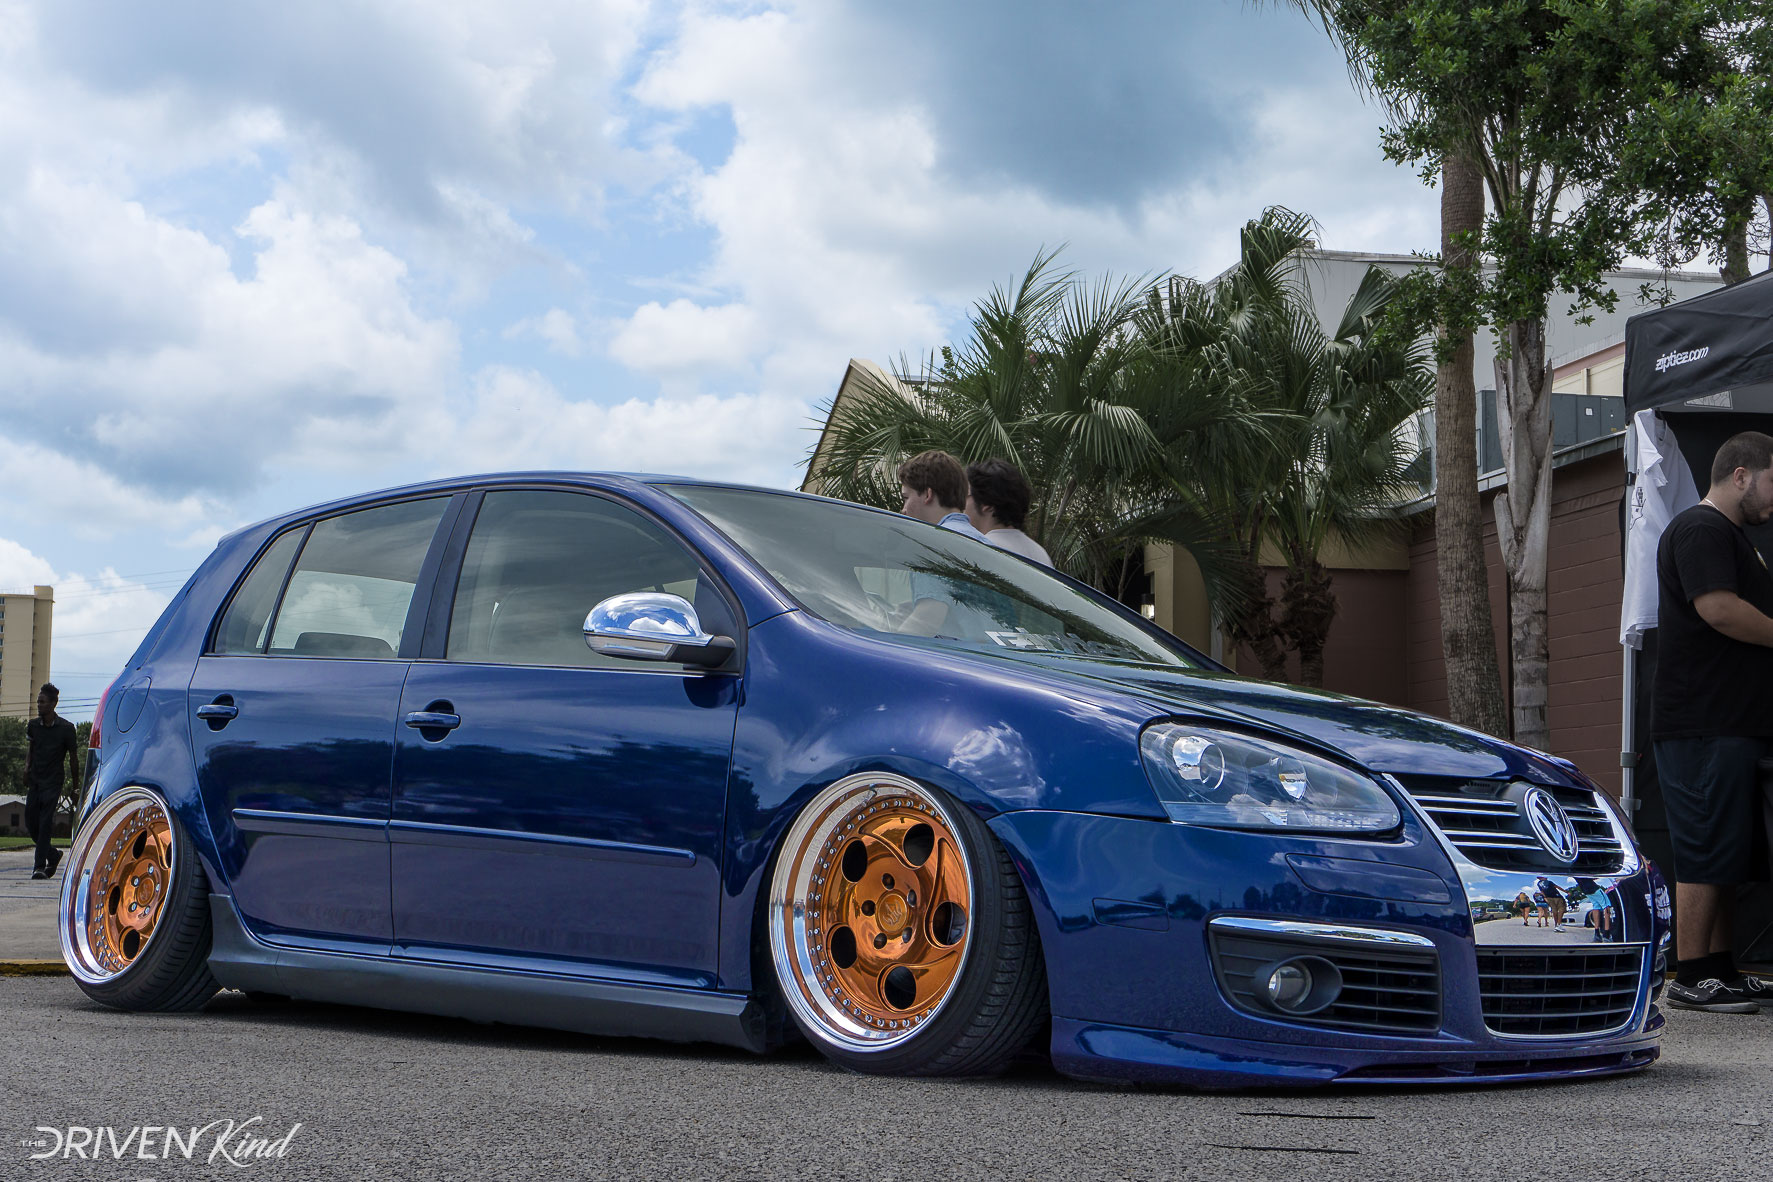 VW MK4 Daily Driven Inc. Presents Florida's Finest Melbourne FL Auditorium coverage by The Driven Kind